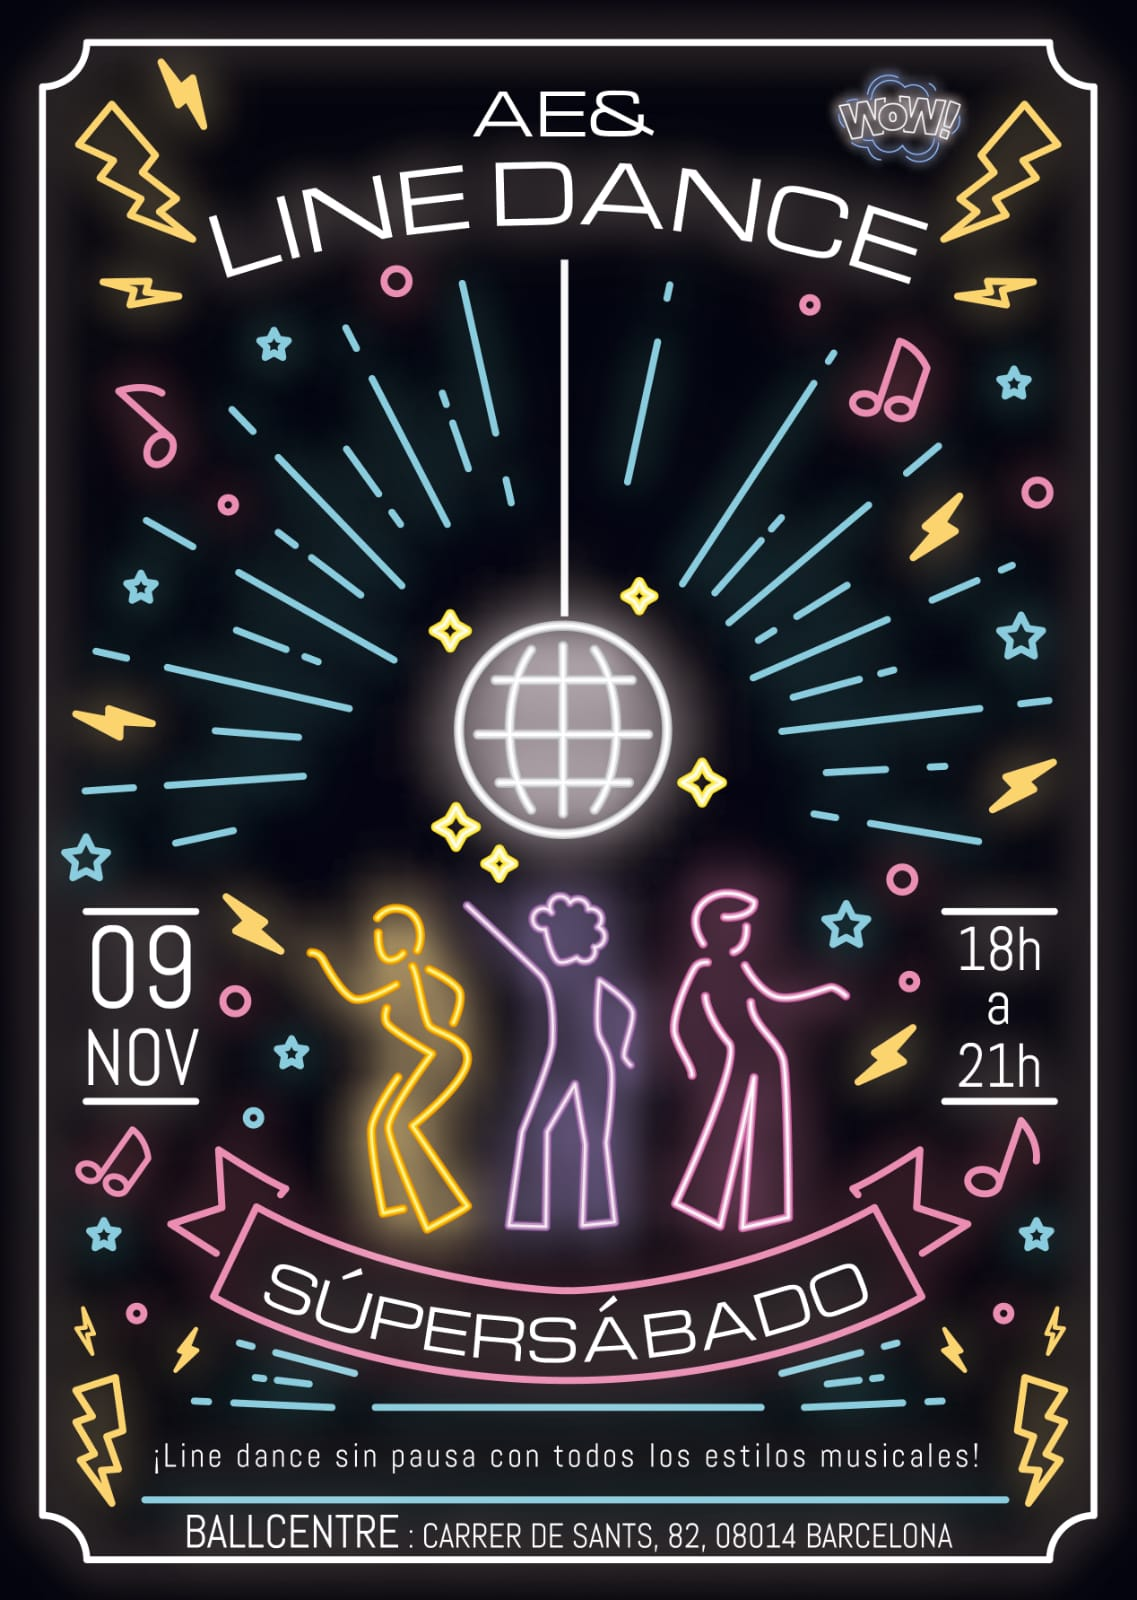 SUPER-DISSABTE Ball centre 9 nov 19